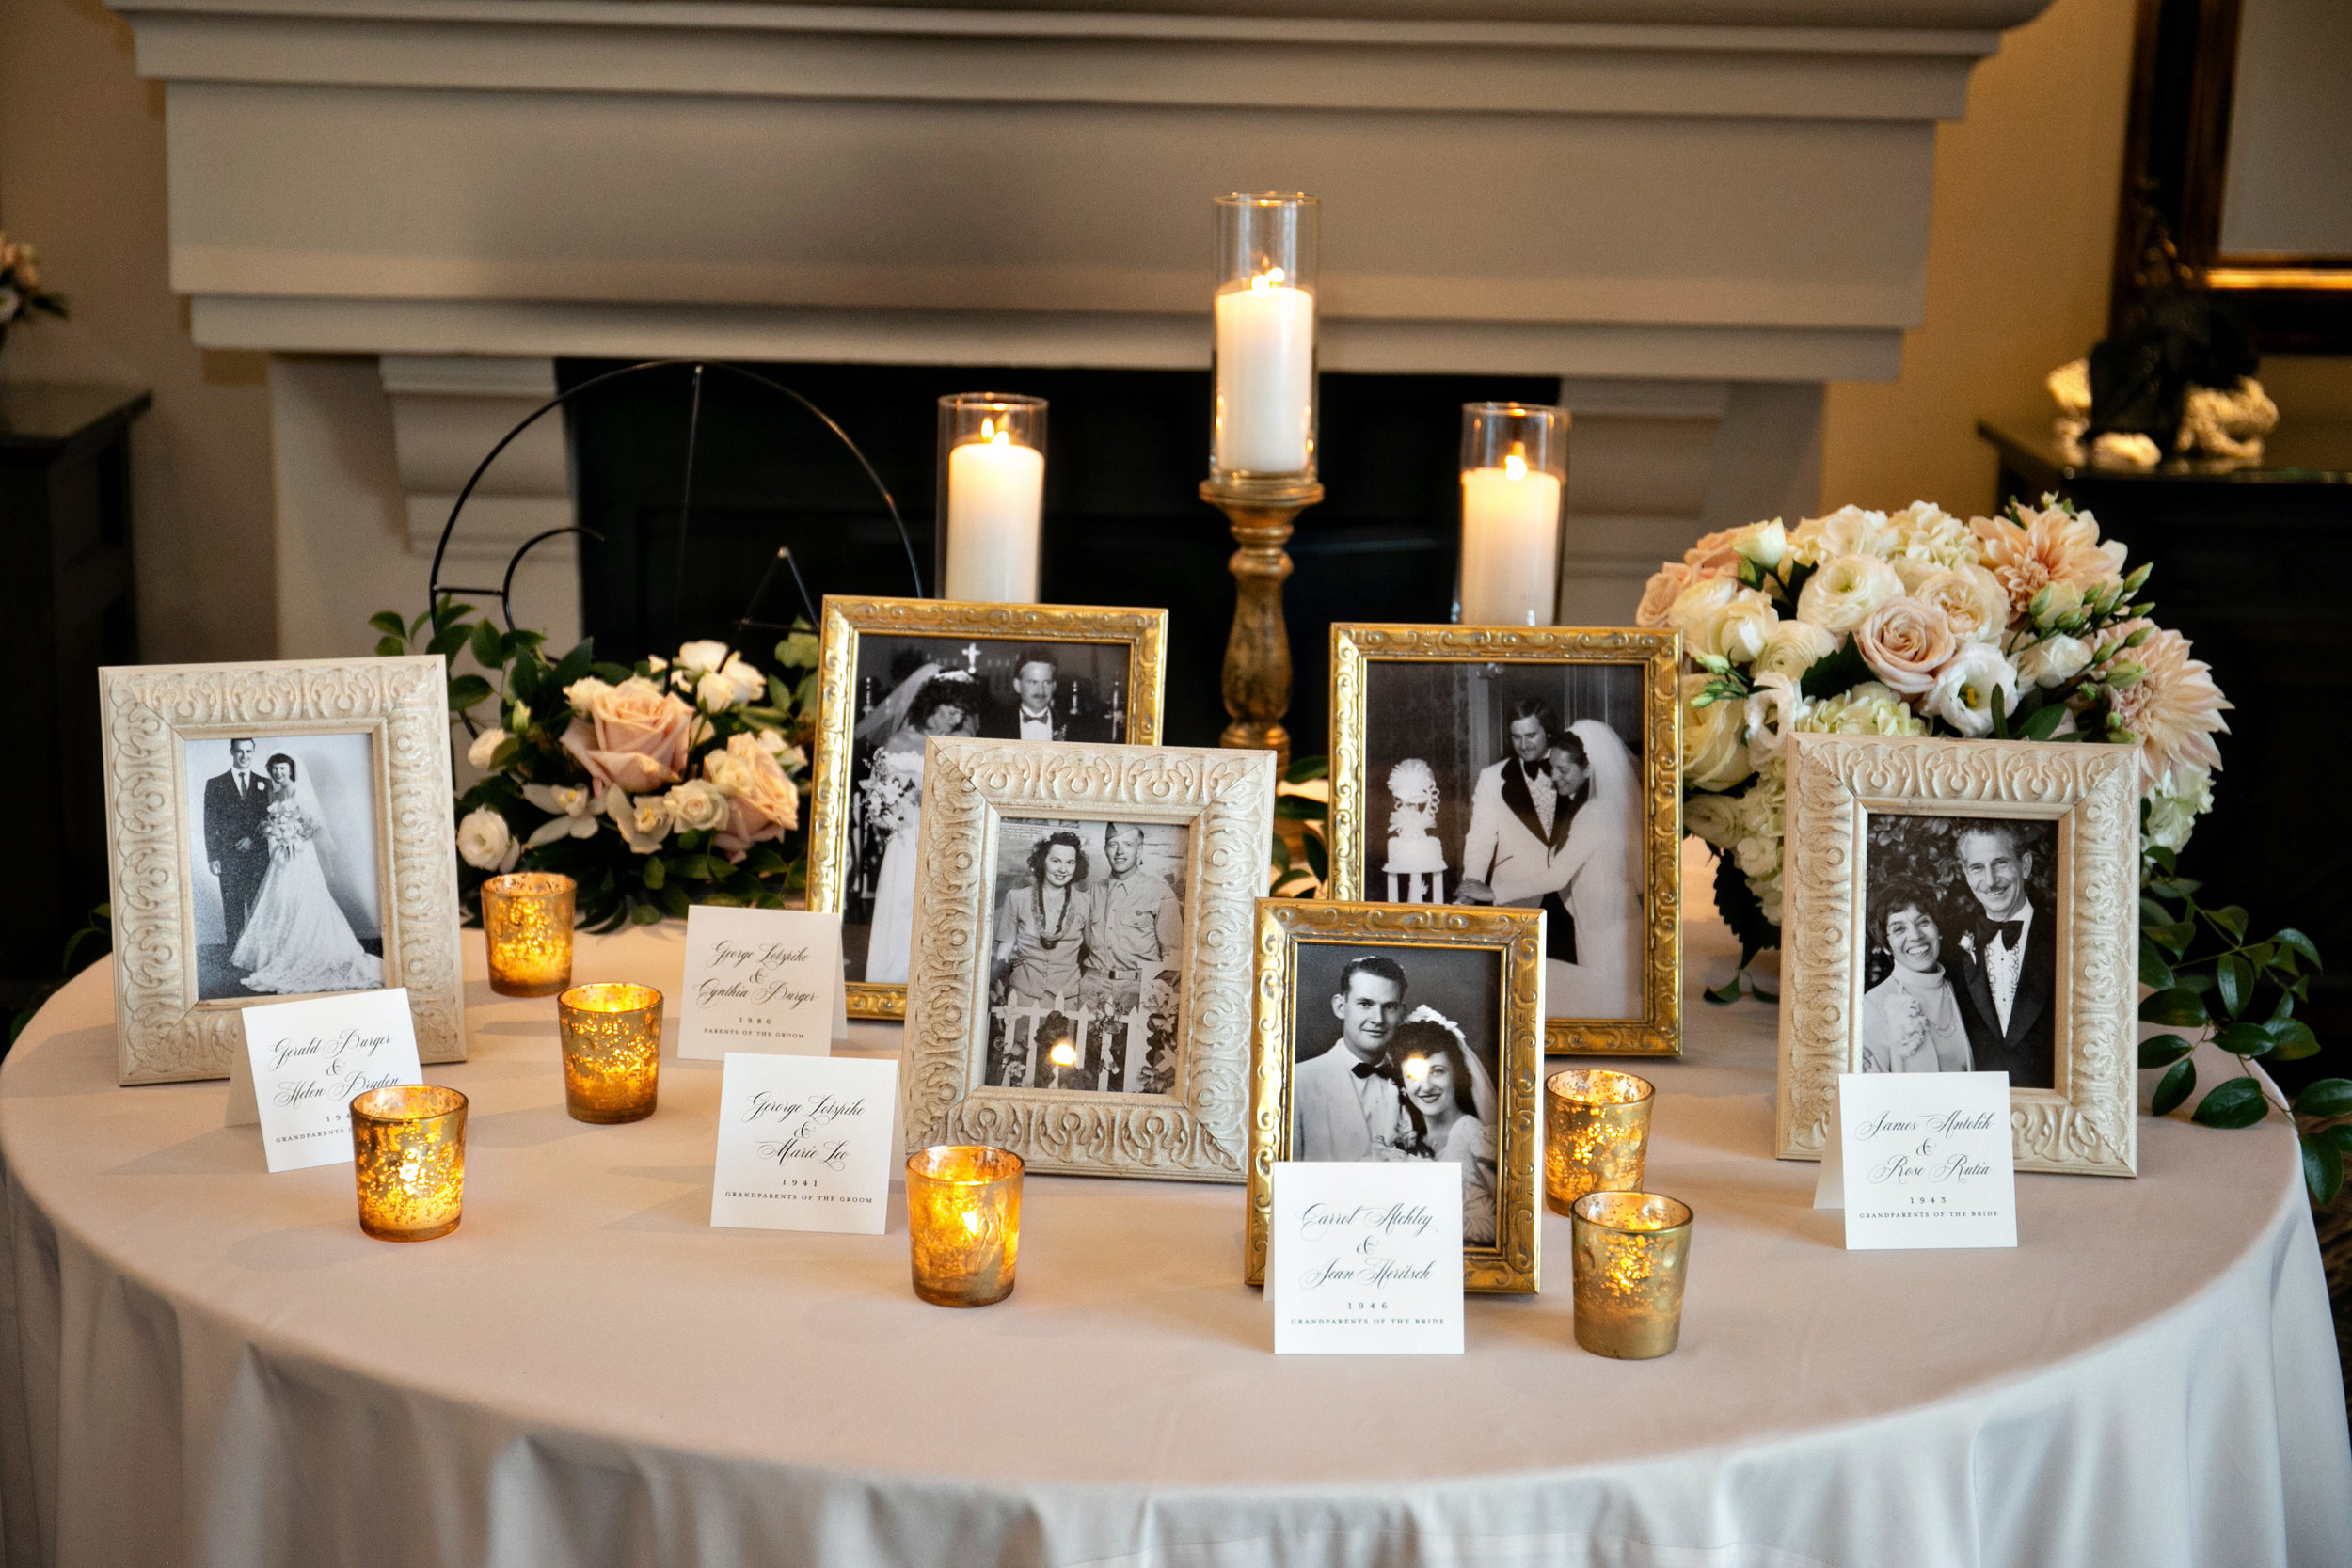 www.santabarbarawedding.com | Laurie Bailey | Ojai Valley Inn | Amber Weir Weddings | Photo Memory Table